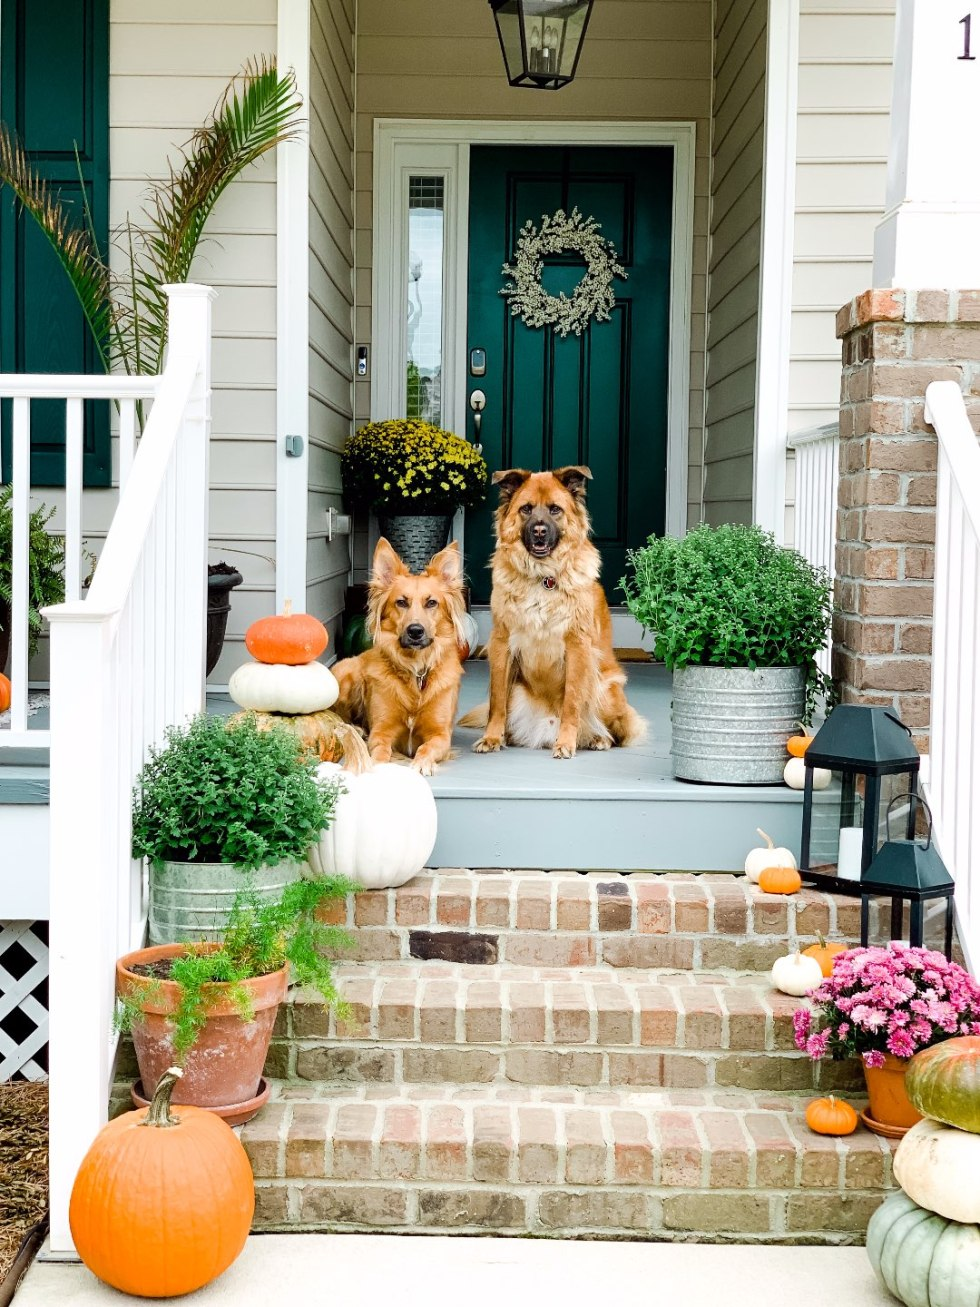 "Our Inviting and Cozy Fall Front Porch Decor Ideas - I'm Fixin' To - @mbg0112 | Our Inviting and Cozy Fall Front Porch Decor Ideas - I'm Fixin' To - @mbg0112 | Our Inviting and Cozy Fall Front Porch Decor Ideas by popular North Carolina lifestyle blog, I'm Fixin' To: image of two dogs sitting on a front porch decorated with Target Smith and Hacken 12"" Iron Galvanized Planters, Target Threshold 22"" Artificial Berry Wreath White, pumpkins, Target Smart Living San Rafael II 15"" LED Solar Mission Outdoor Lanterns, mums, and green plants."